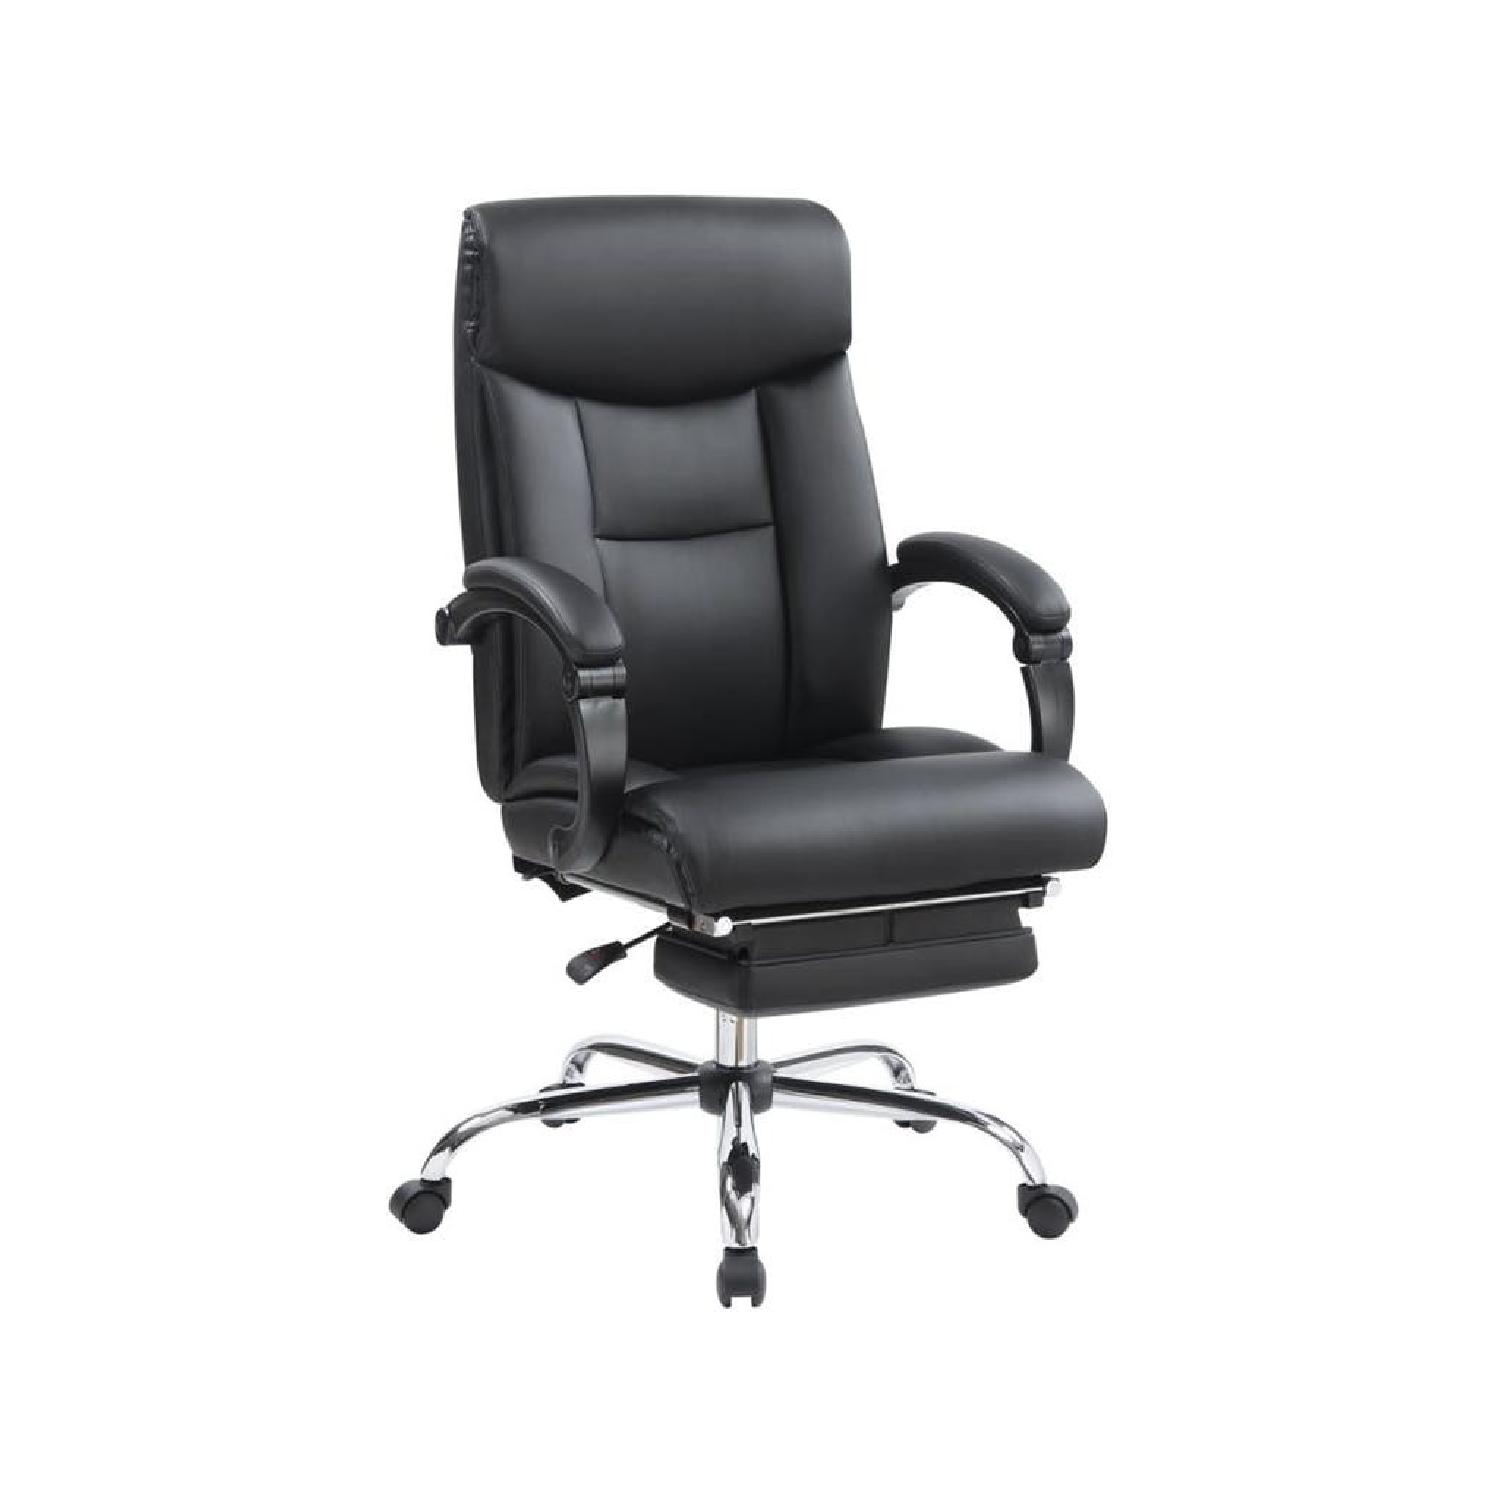 Black Leatherette High Back Ergonomic Recliner Office Chair